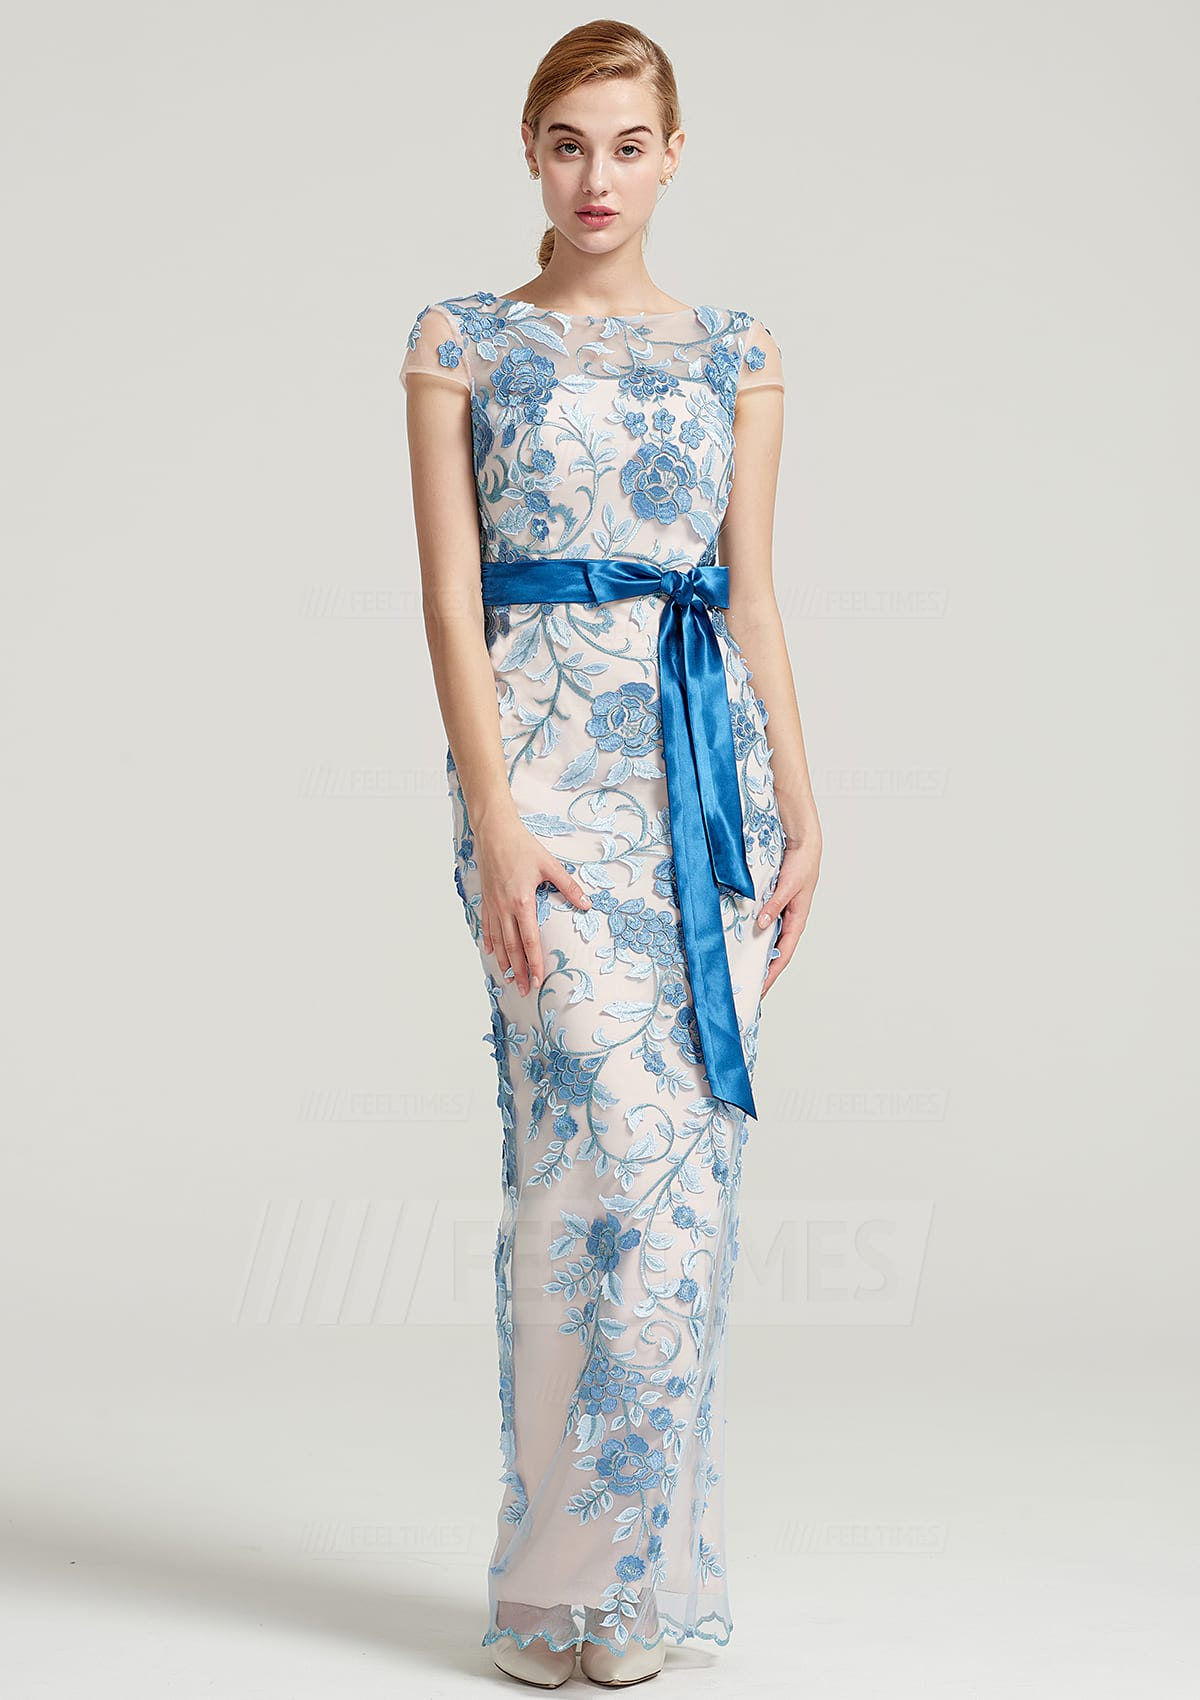 Sheath/Column Bateau Short Sleeve Long/Floor-Length Tulle Dress With Sashes Appliqued